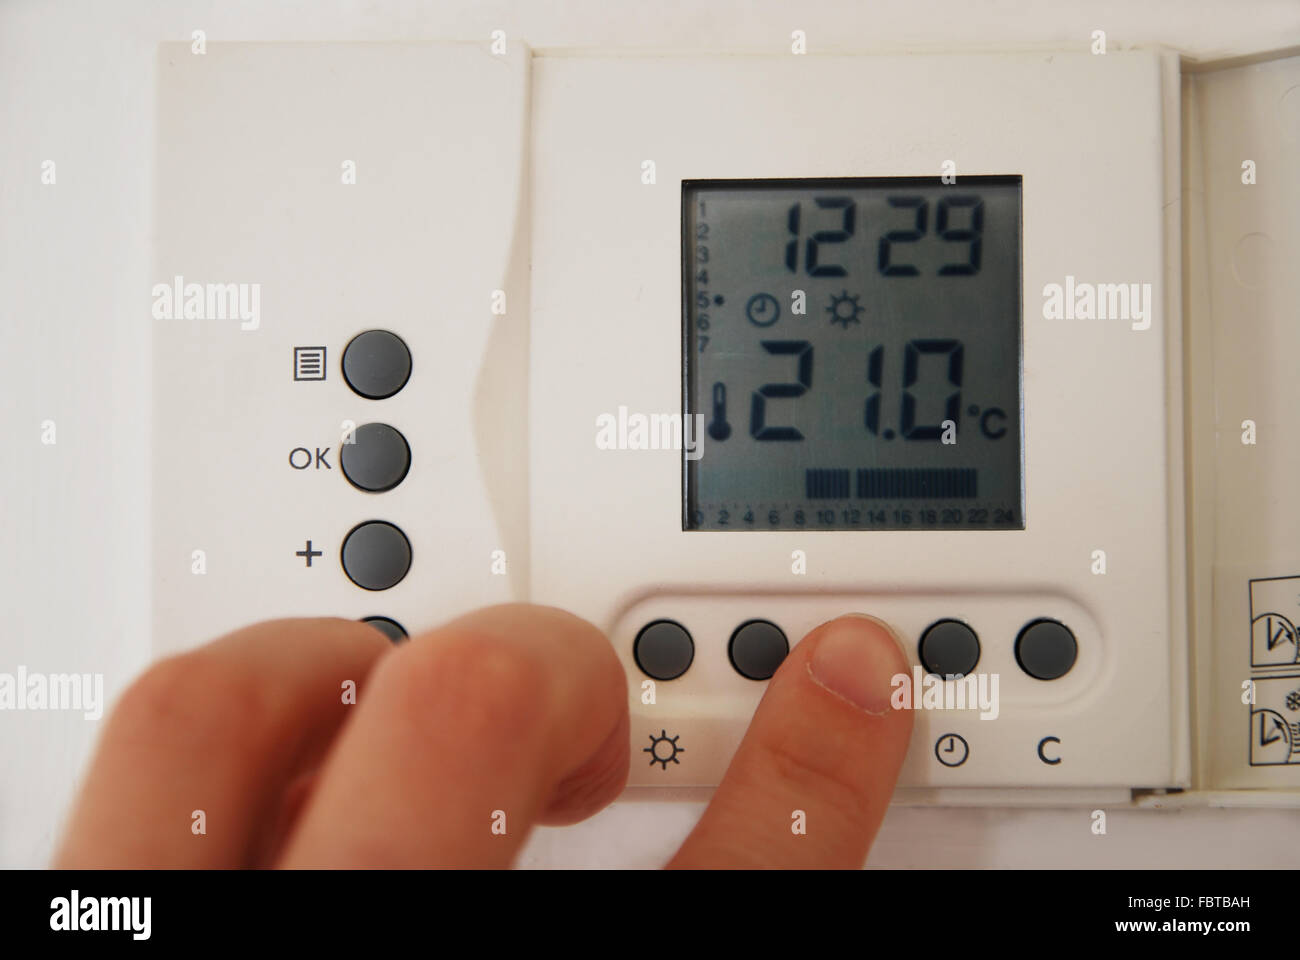 heating room thermostat Stock Photo